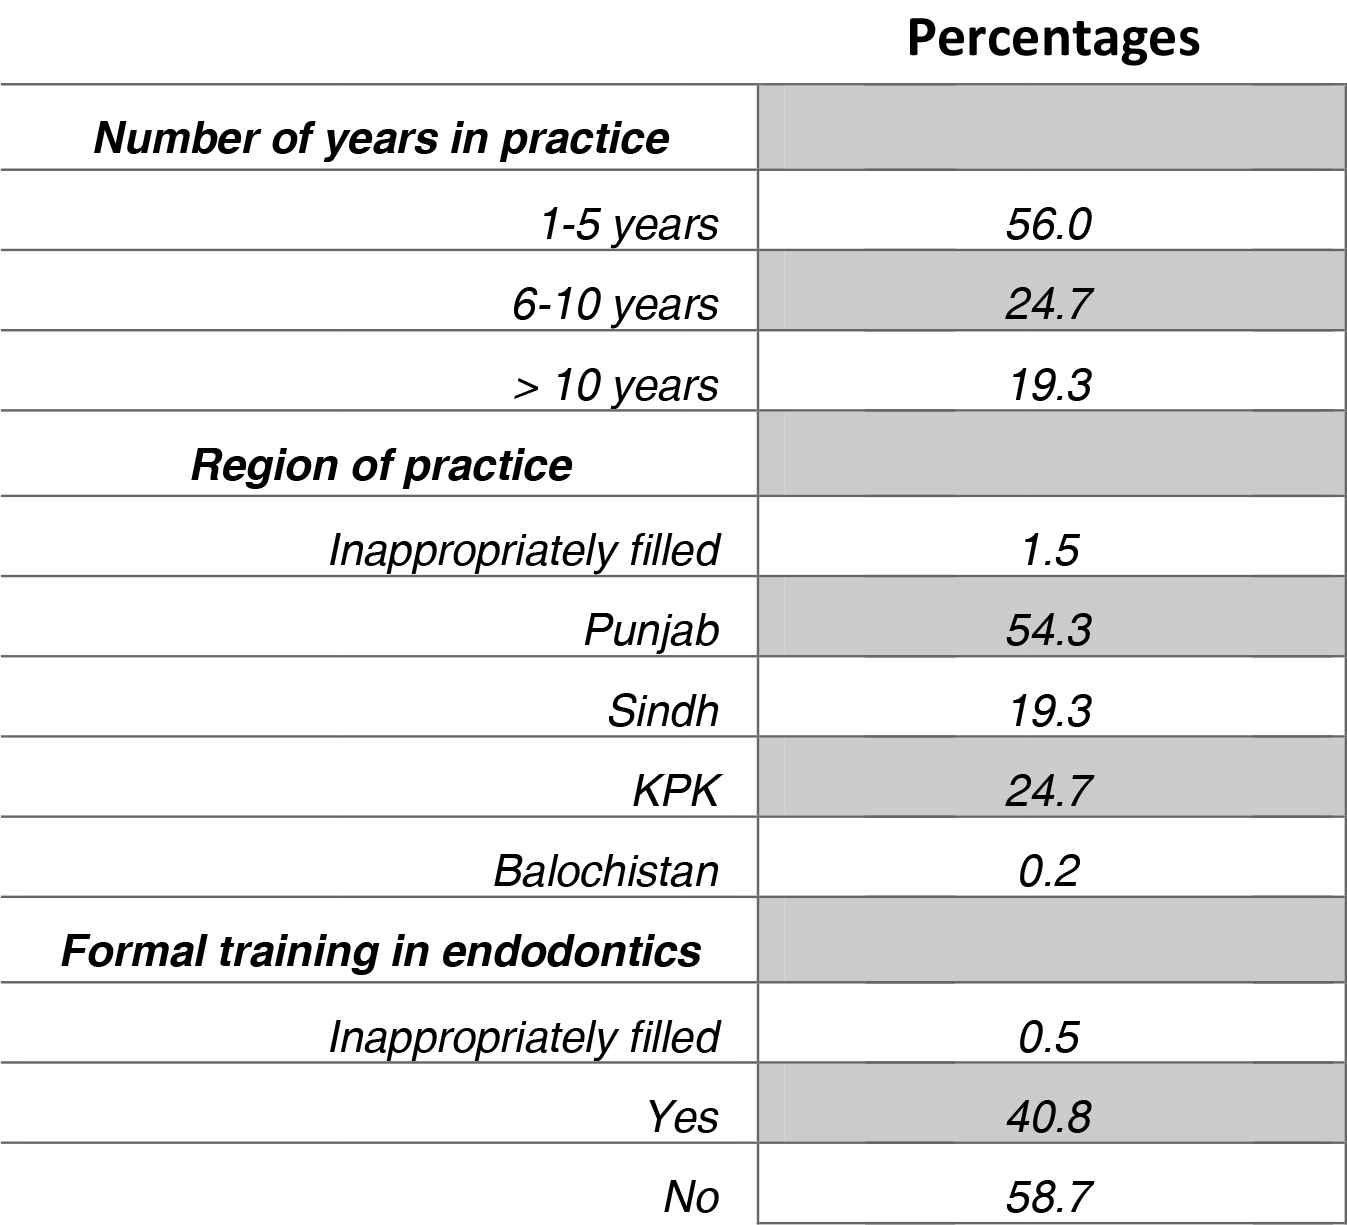 Trends in Contemporary Endodontic Practice of Pakistan: A National